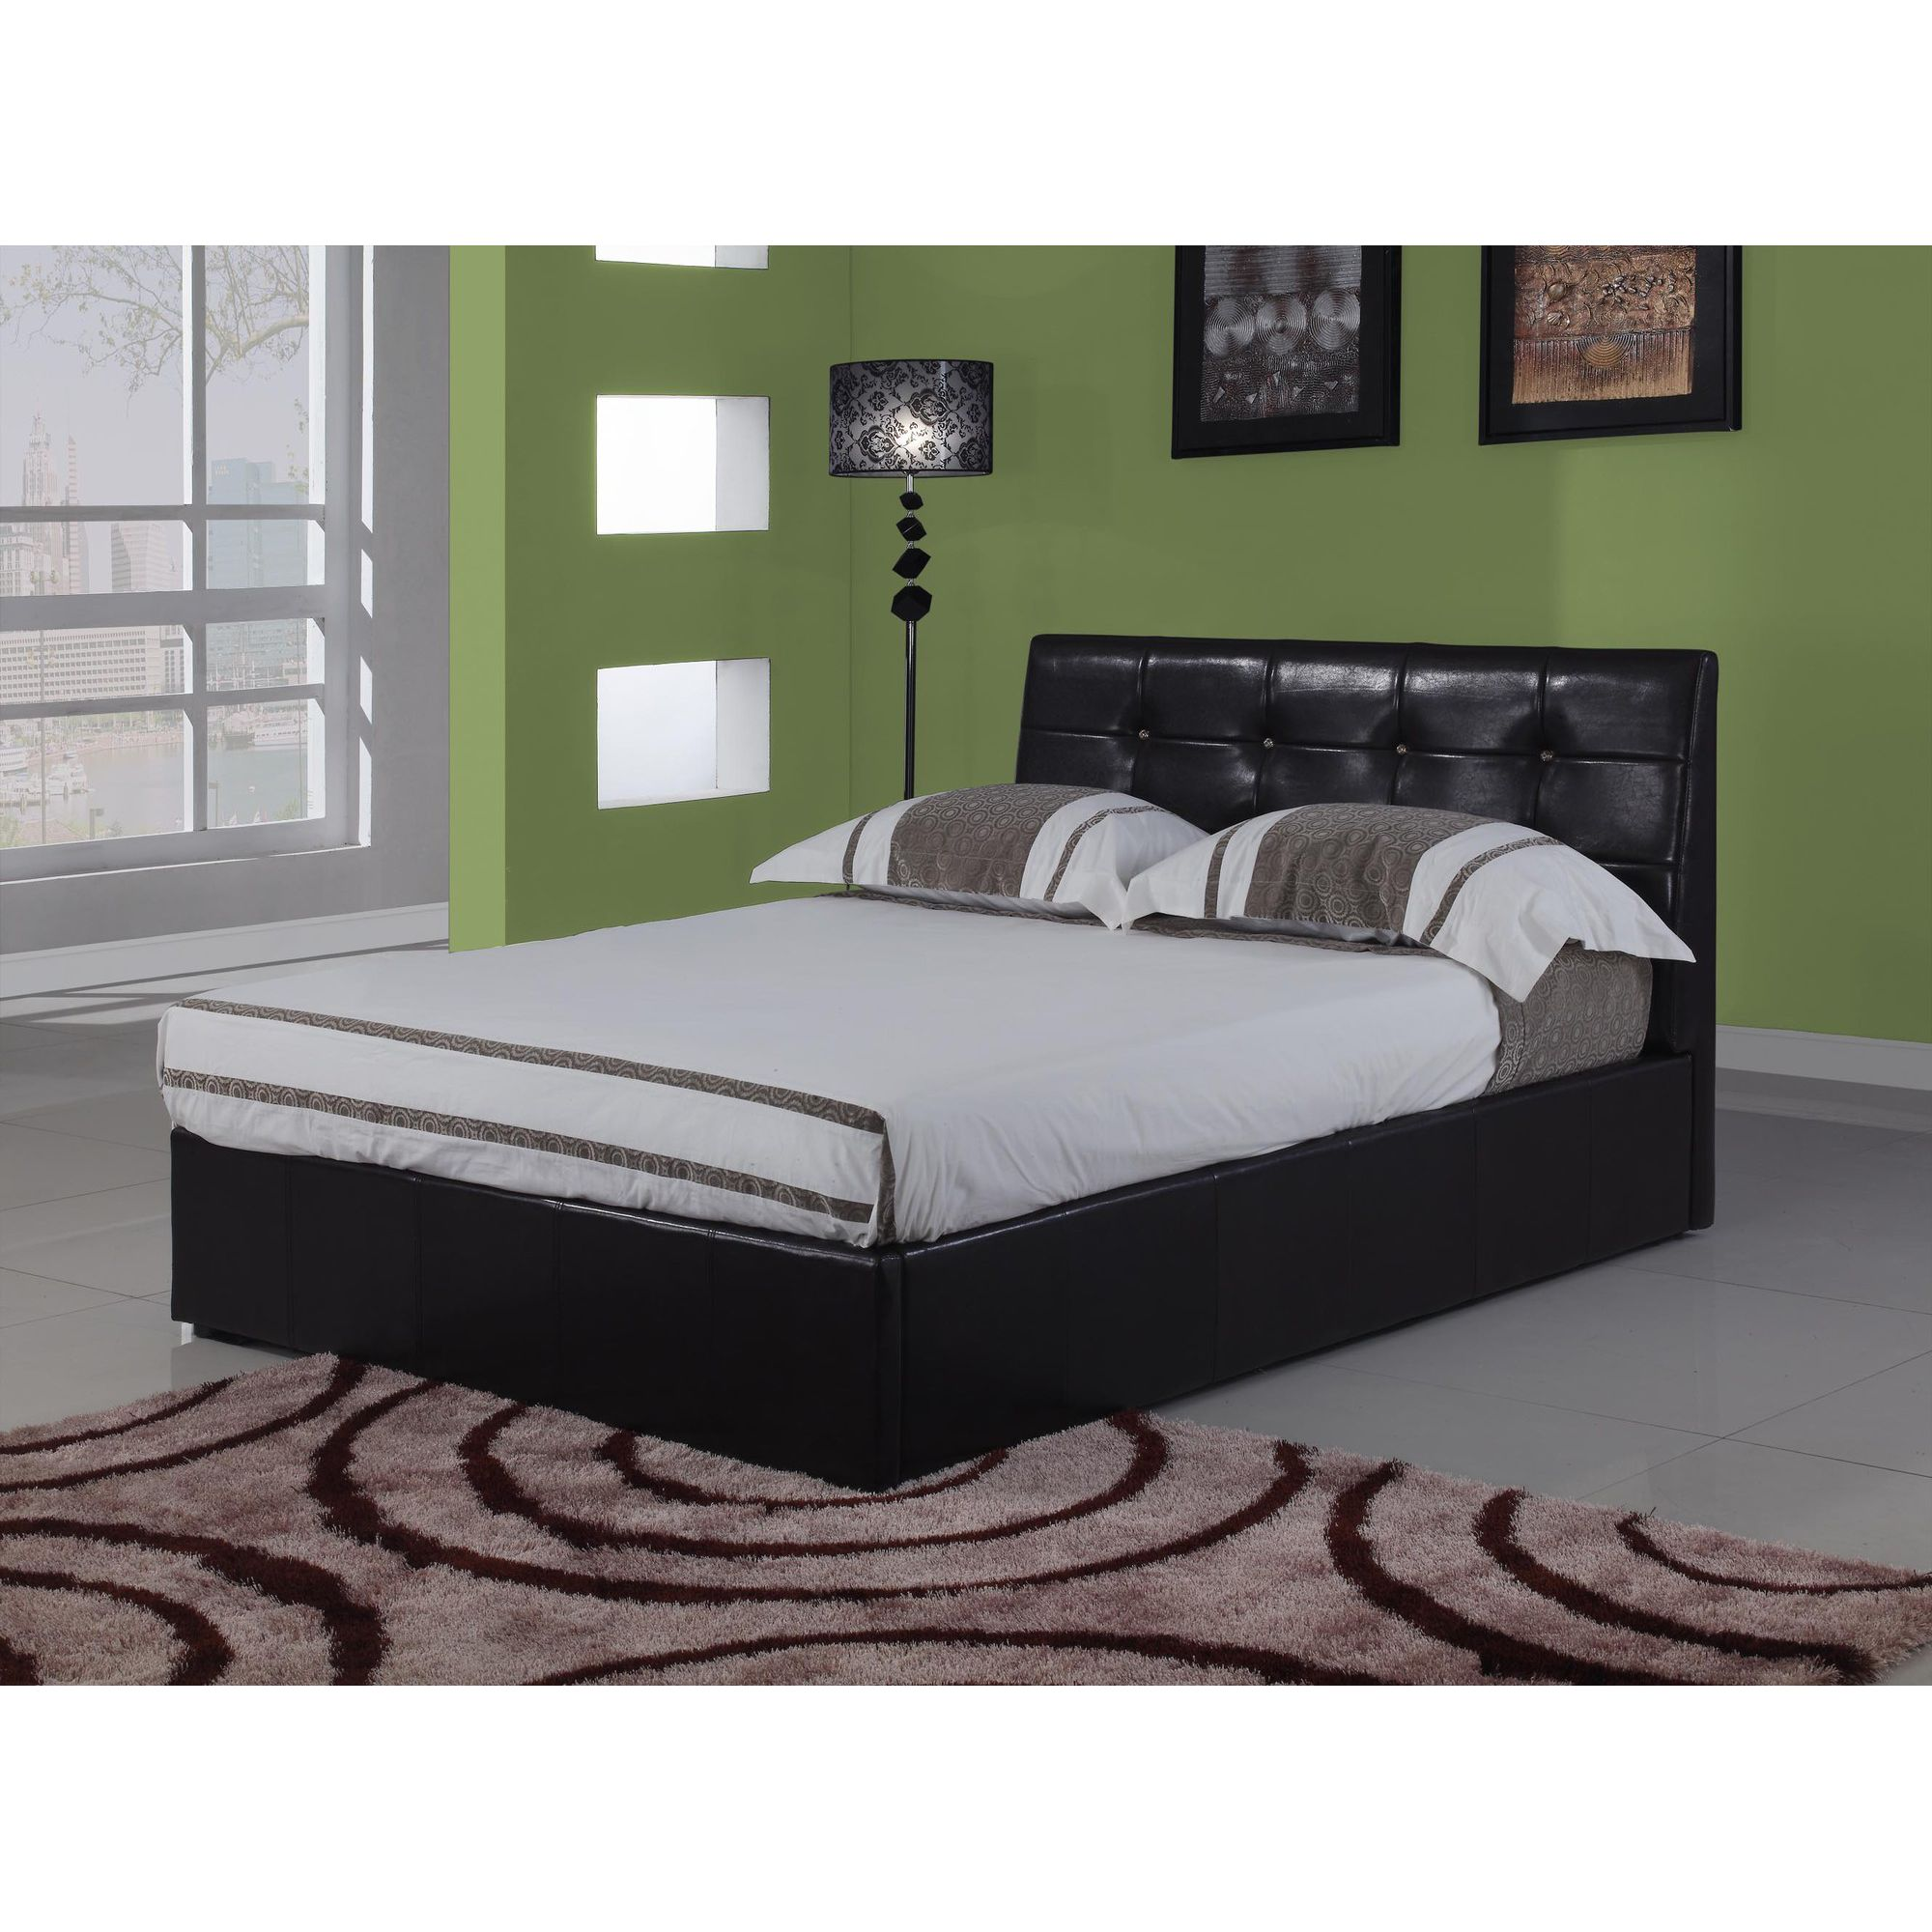 Interiors 2 suit Modena Bedframe - Small Double - Brown at Tesco Direct